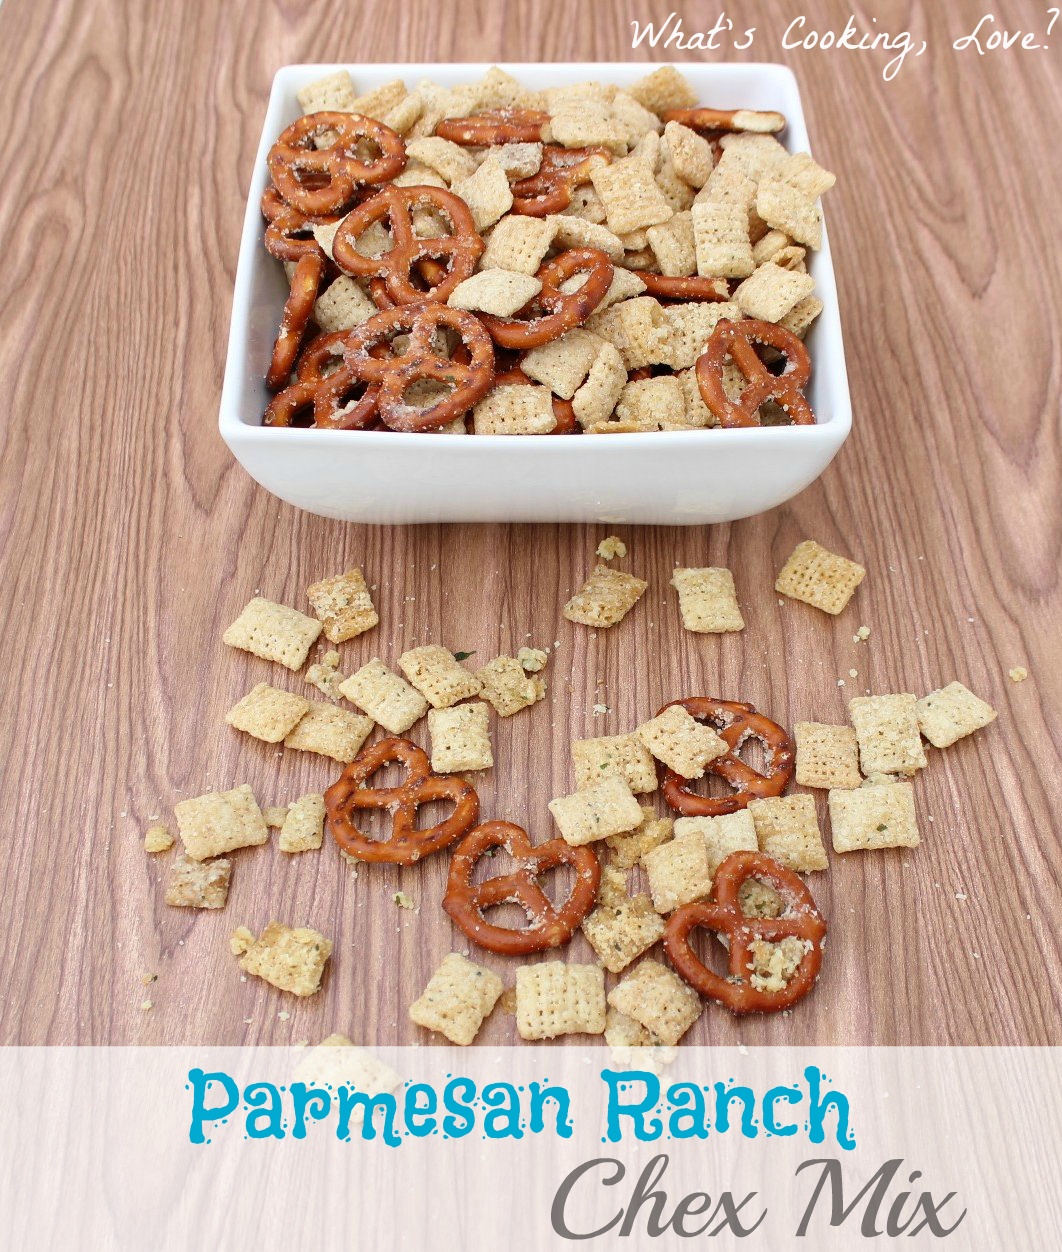 Parmesan Ranch Chex Mix